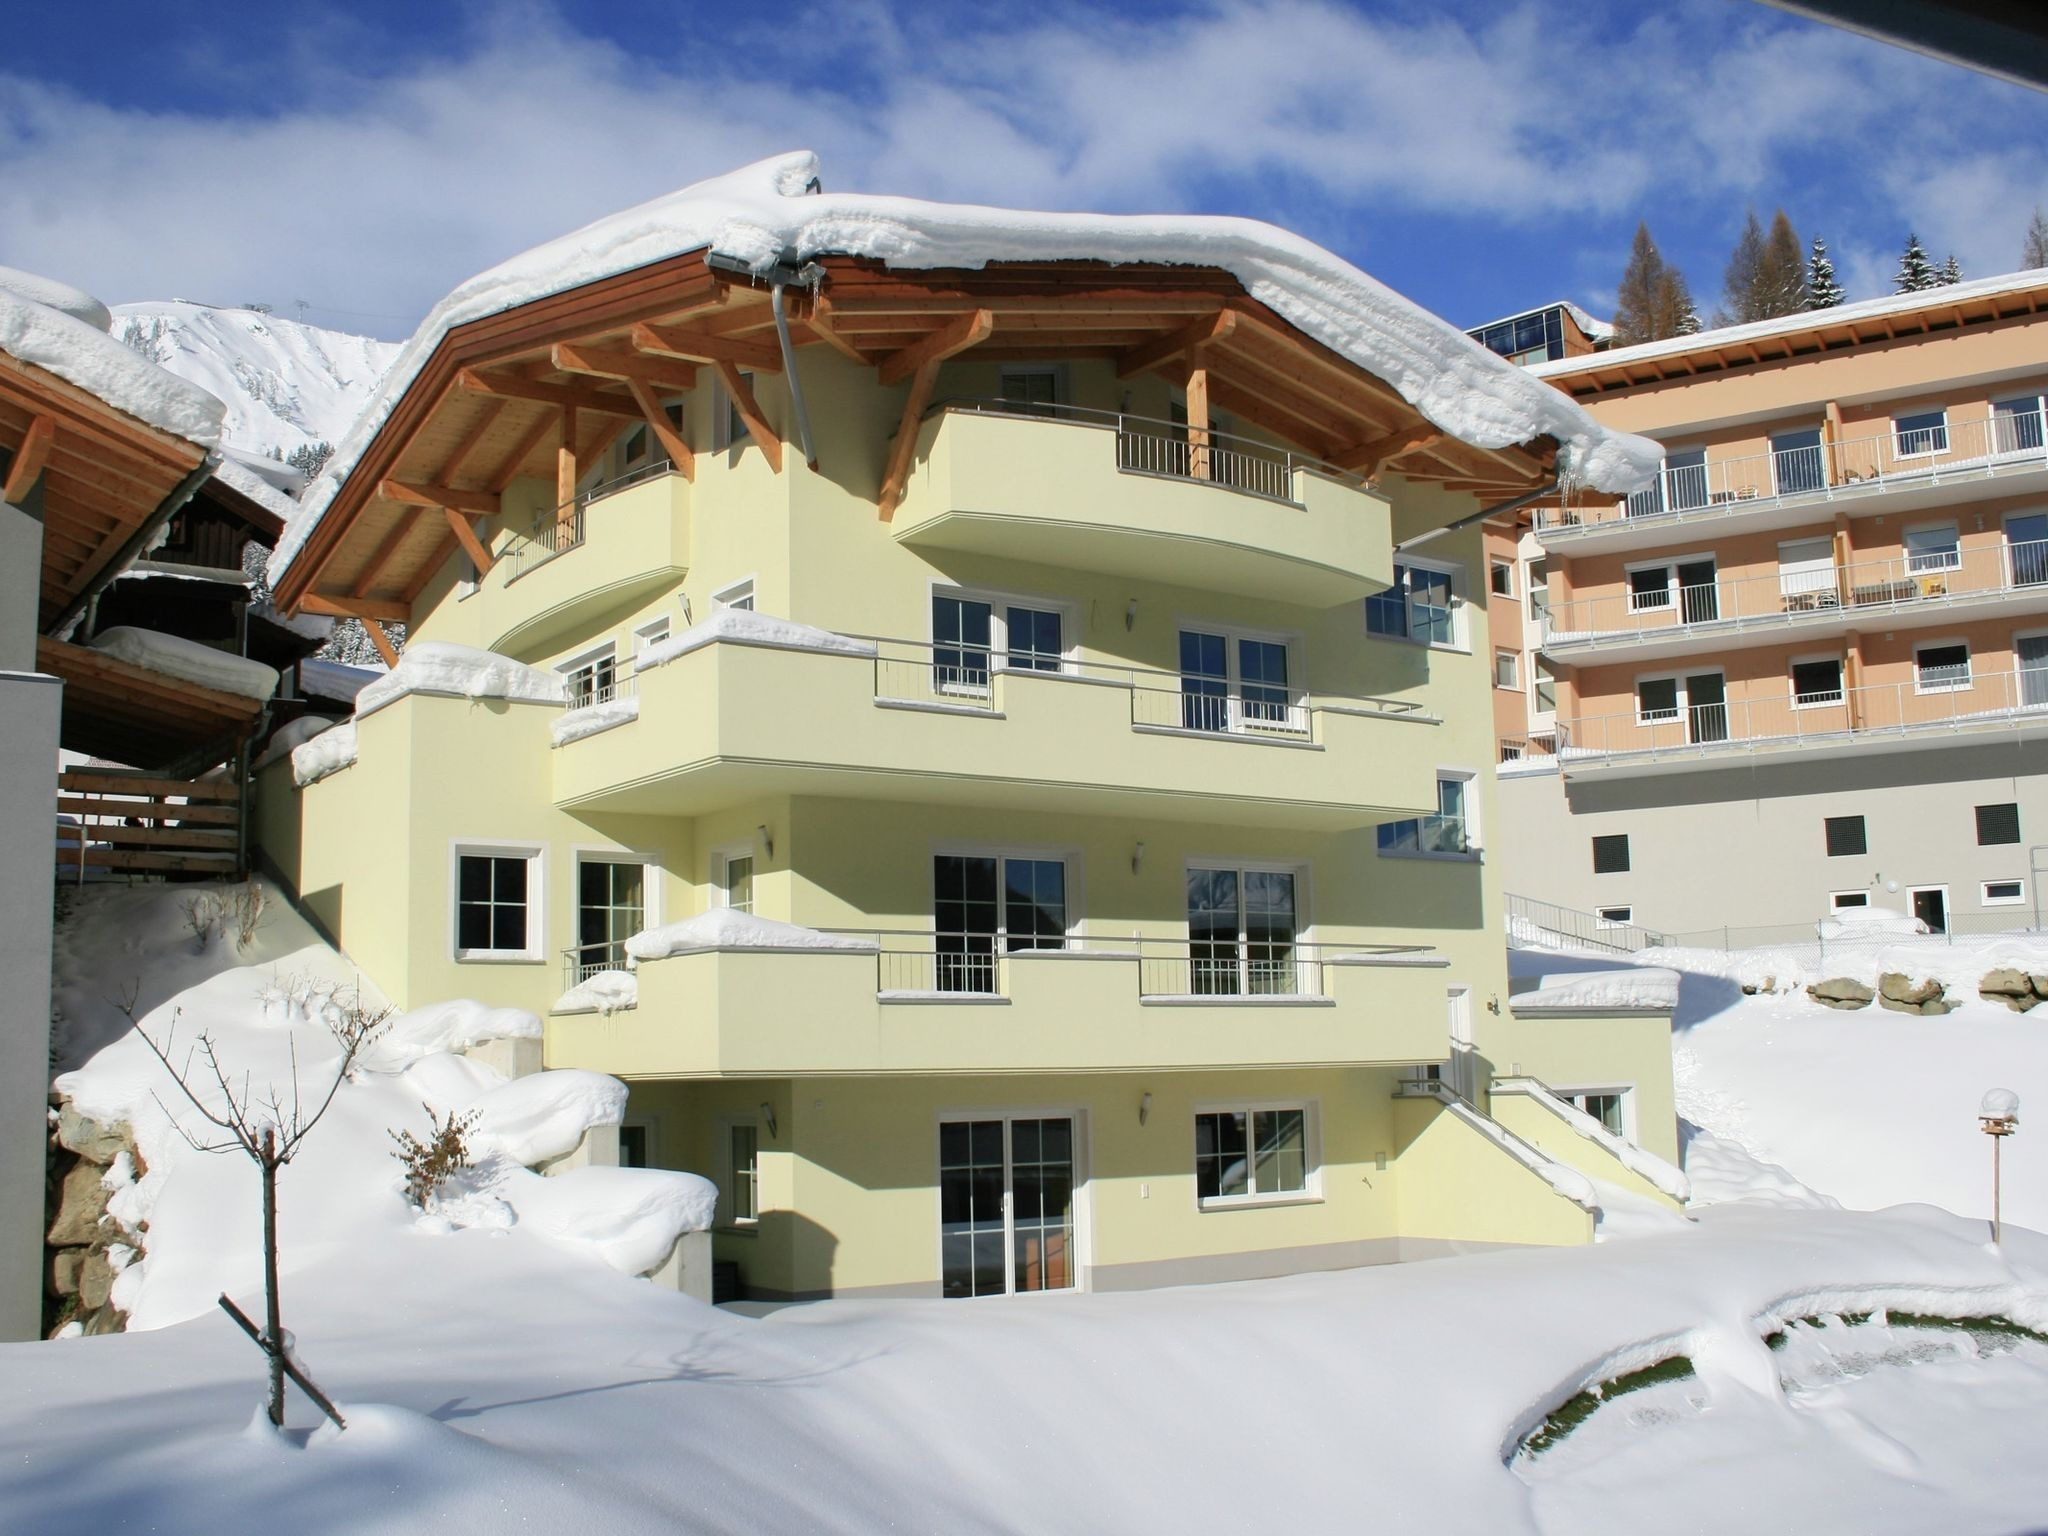 Flat equipped in Sankt anton am arlberg